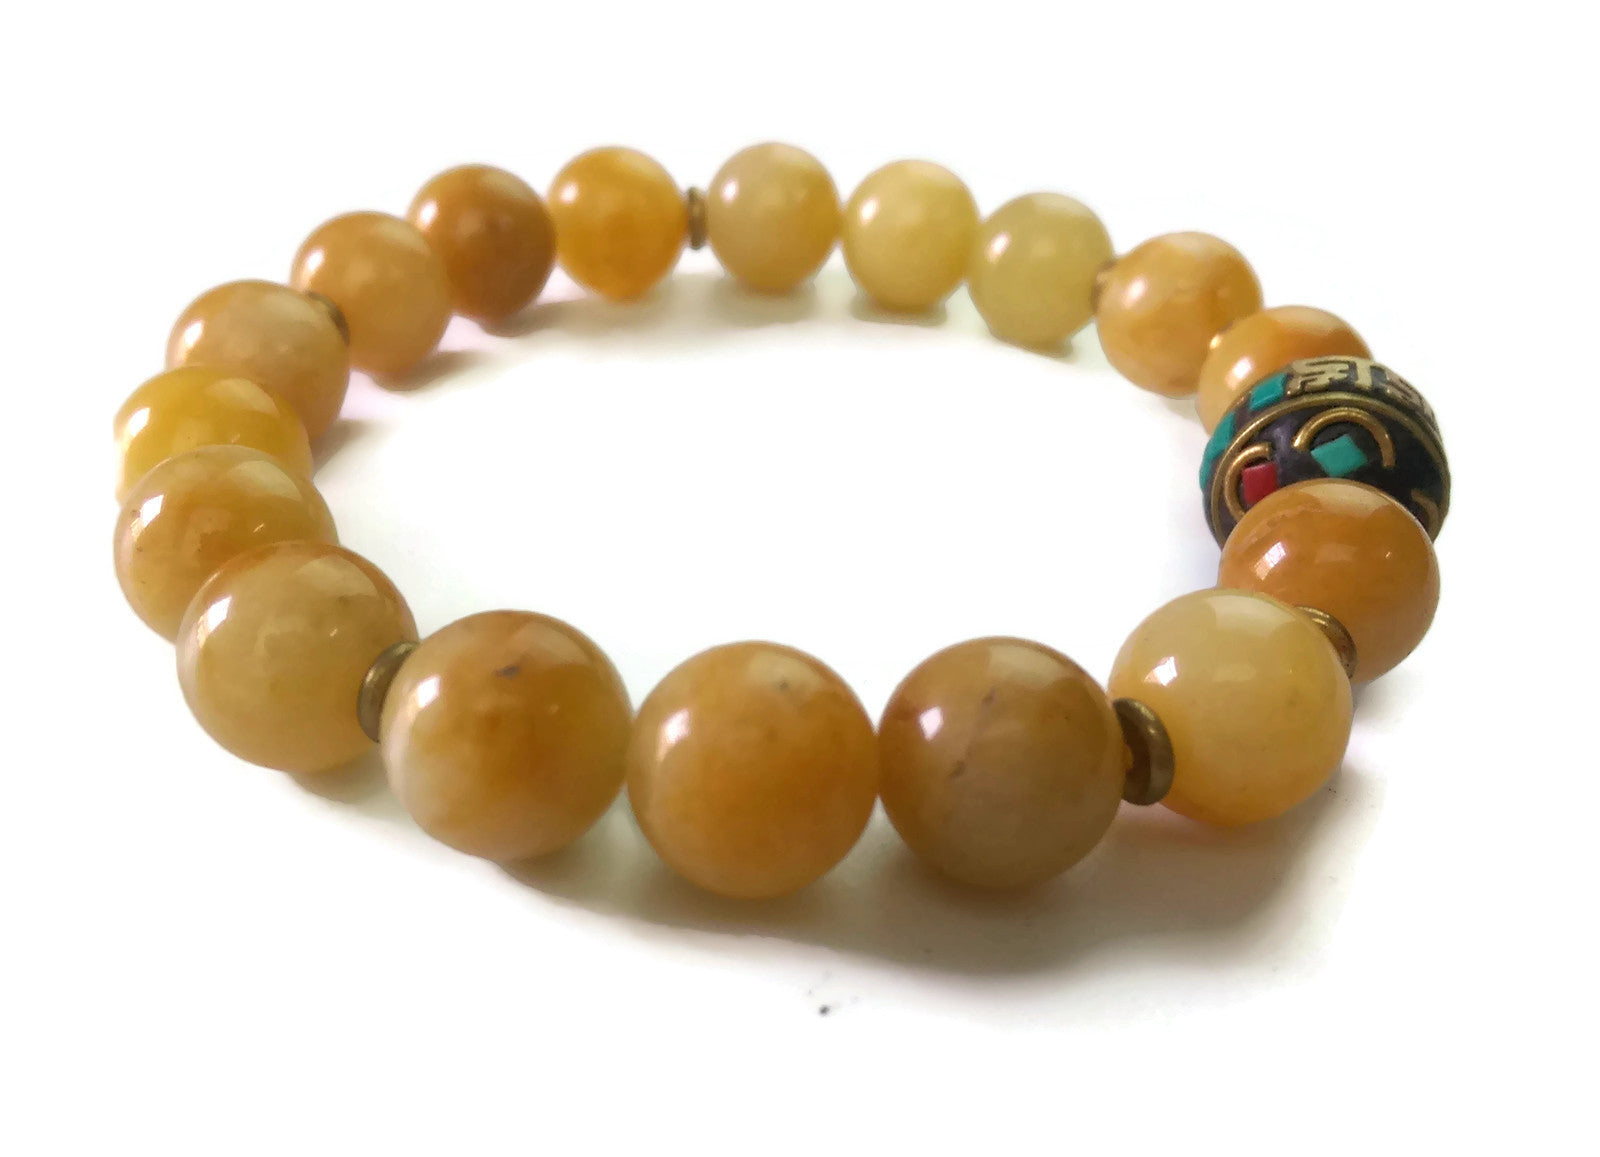 Nepal Chakra Collection 10mm Topaz Stone Nepal Bead Wrist Mala Stretch Bracelet Solar Plexus Chakra